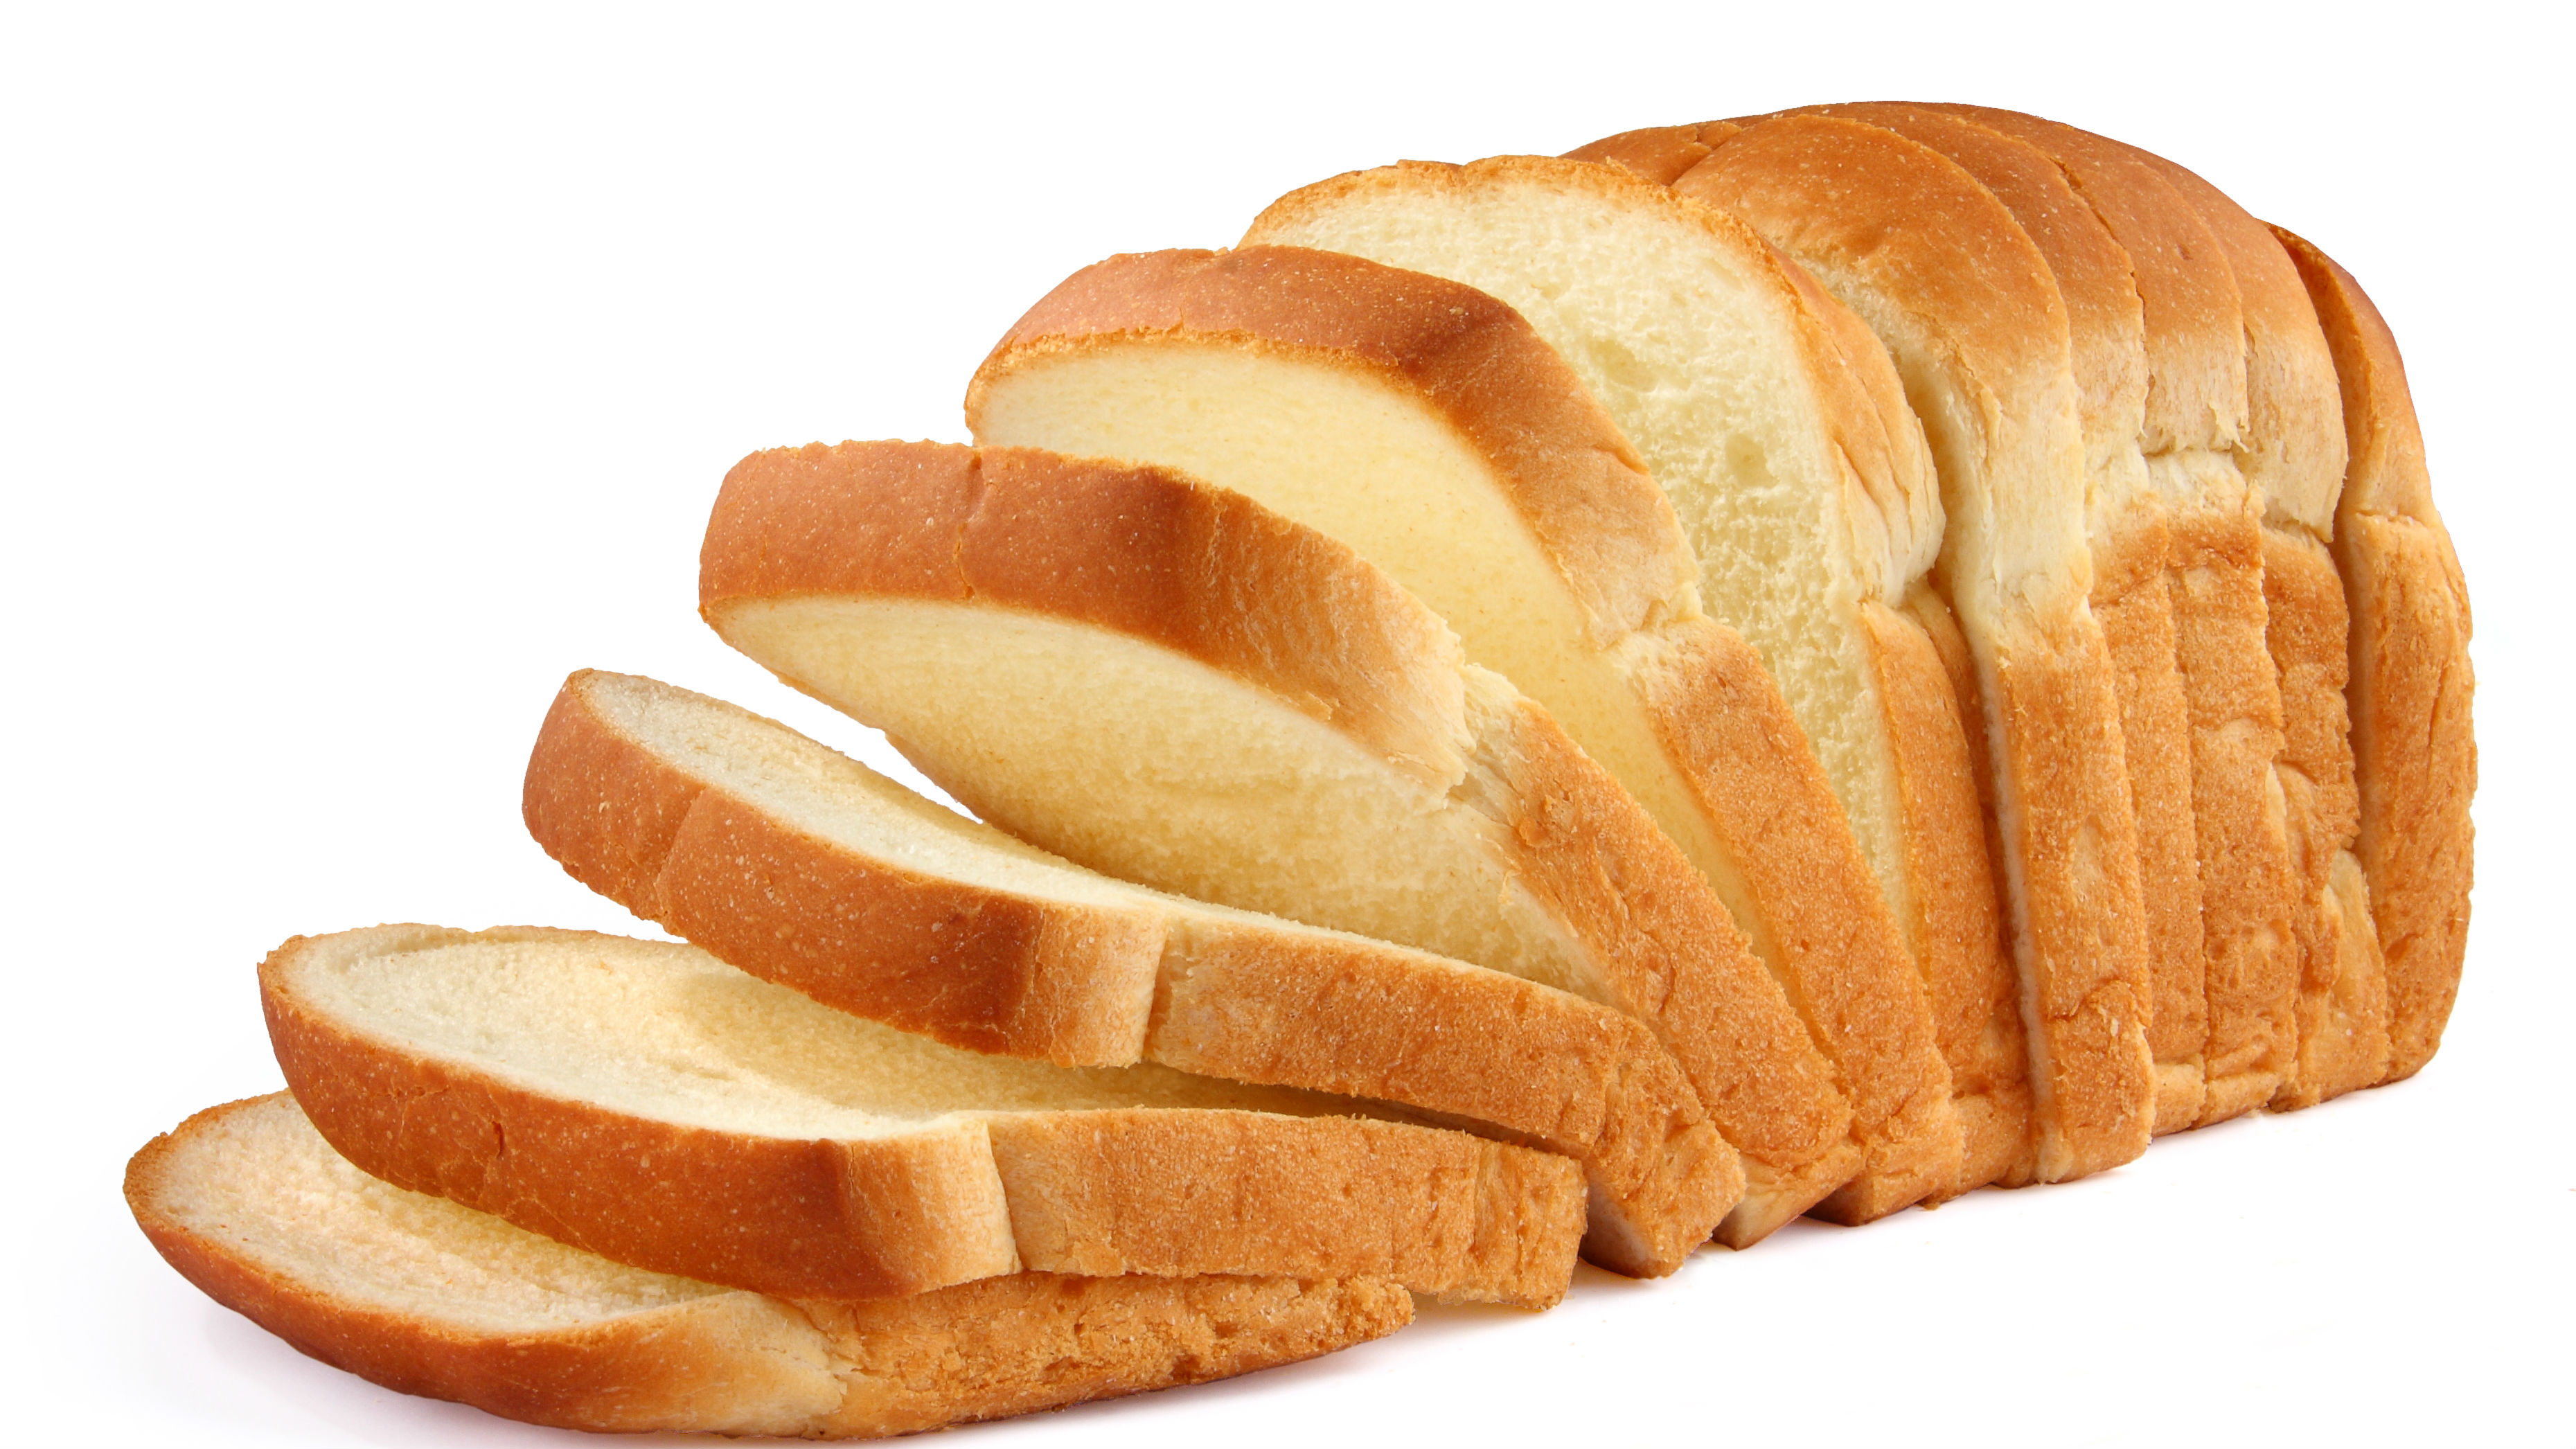 Soft Fresh Bread Slices 127.65 Kb